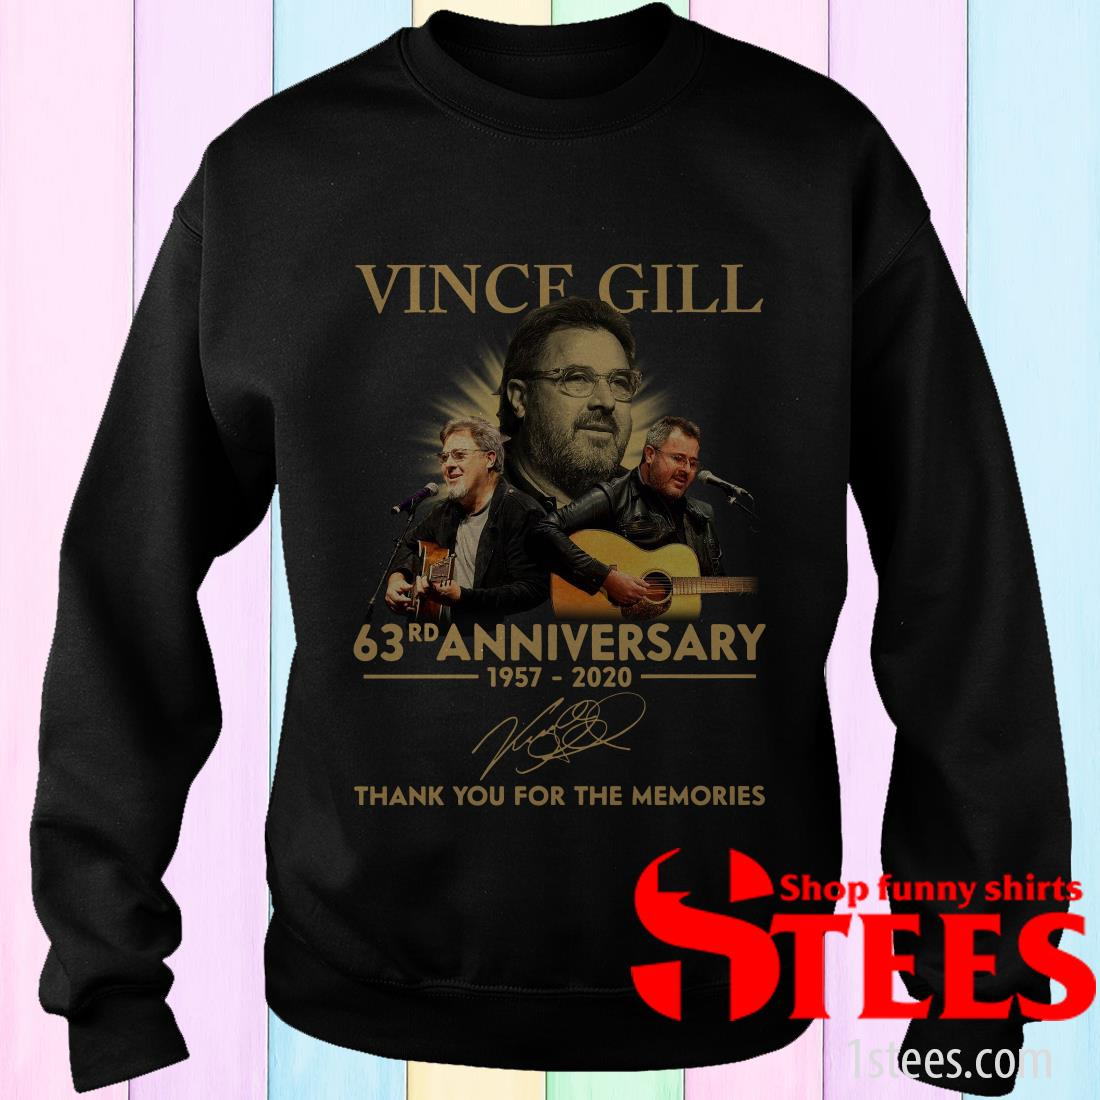 Vince Gill 63rd Anniversary 1957 2020 Thank You For The Memories Signatures T-Shirt